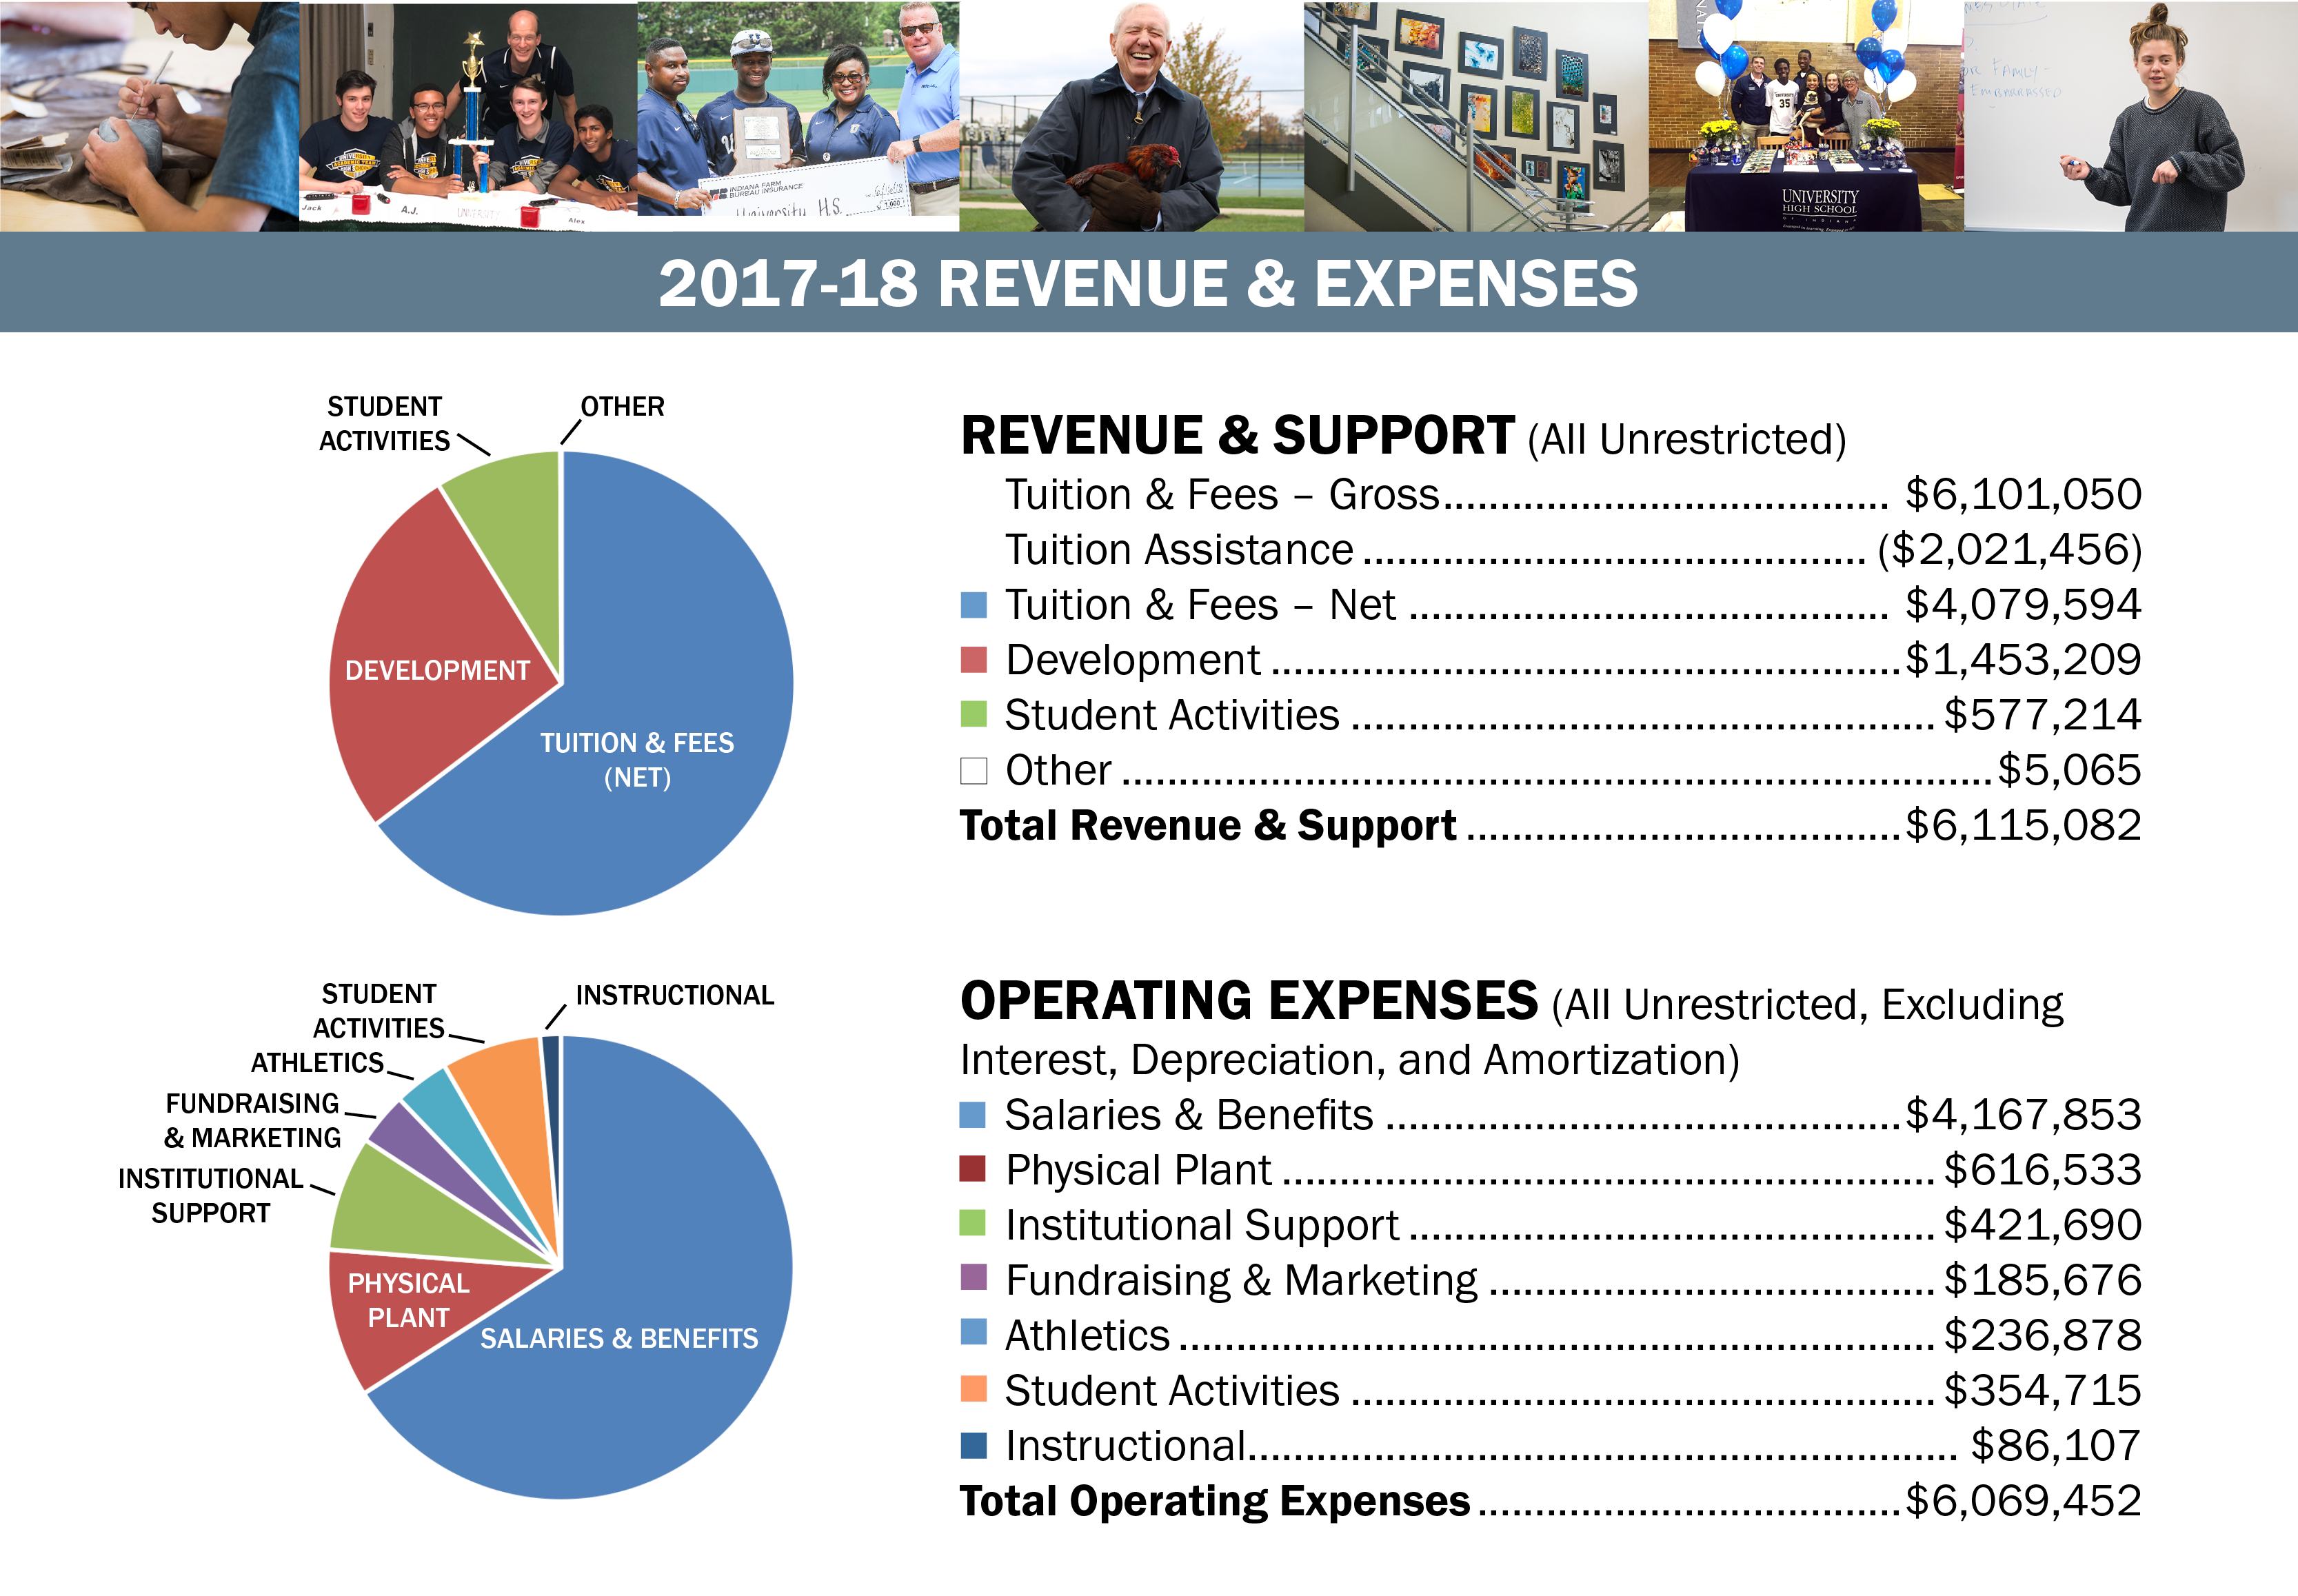 Charts of Revenues and Expenses